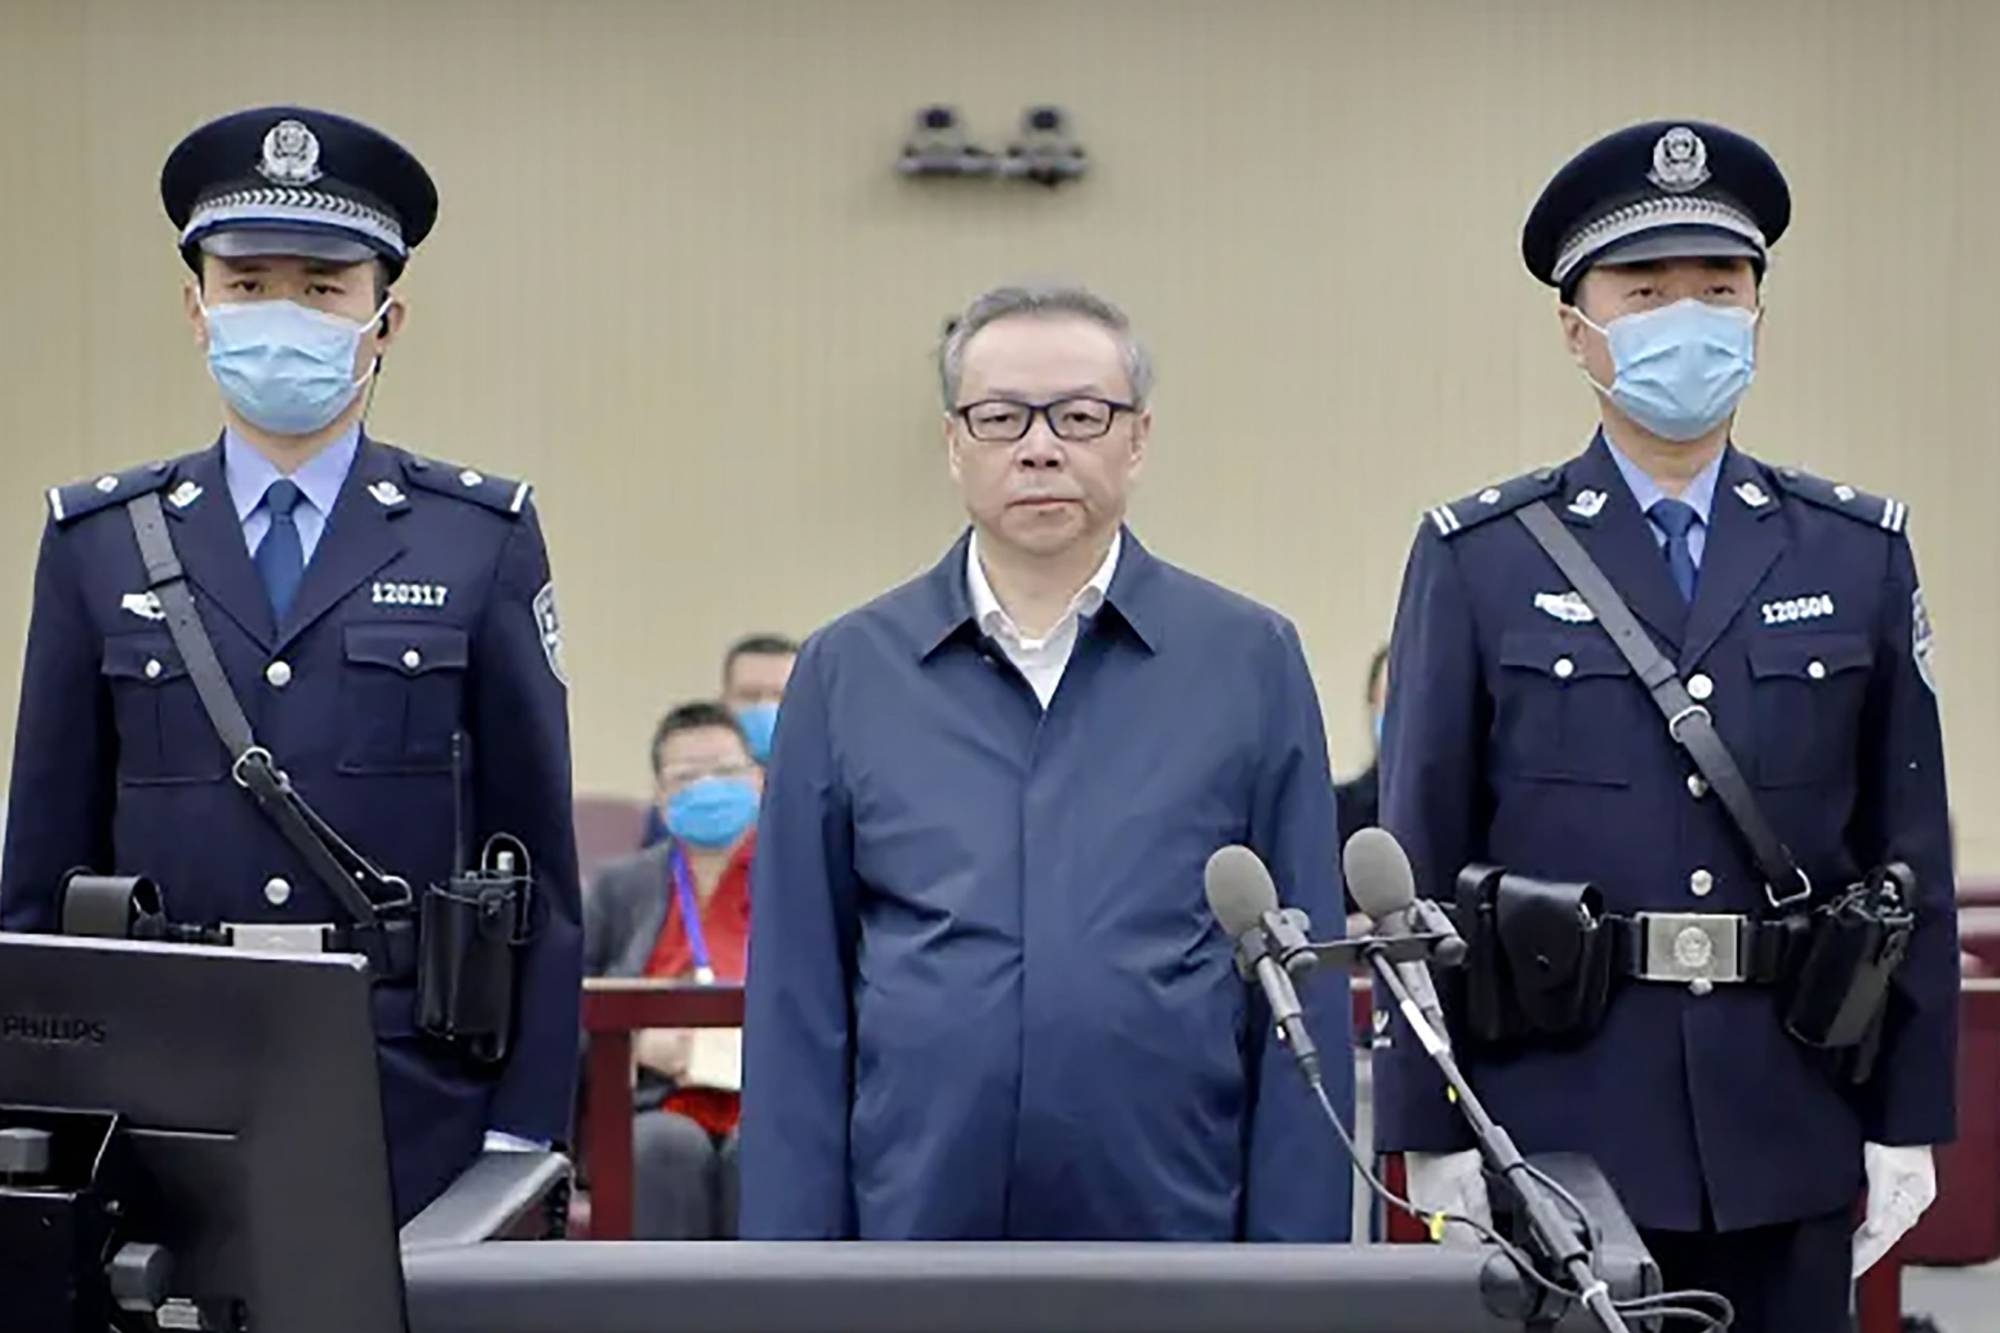 Lai Xiaomin (center), the former chairman of China Huarong Asset Management Co., was sentenced to death on Tuesday for soliciting $277 million in bribes as well as bigamy. | SECOND INTERMEDIATE PEOPLE COURT OF TIANJIN / VIA AFP-JIJI